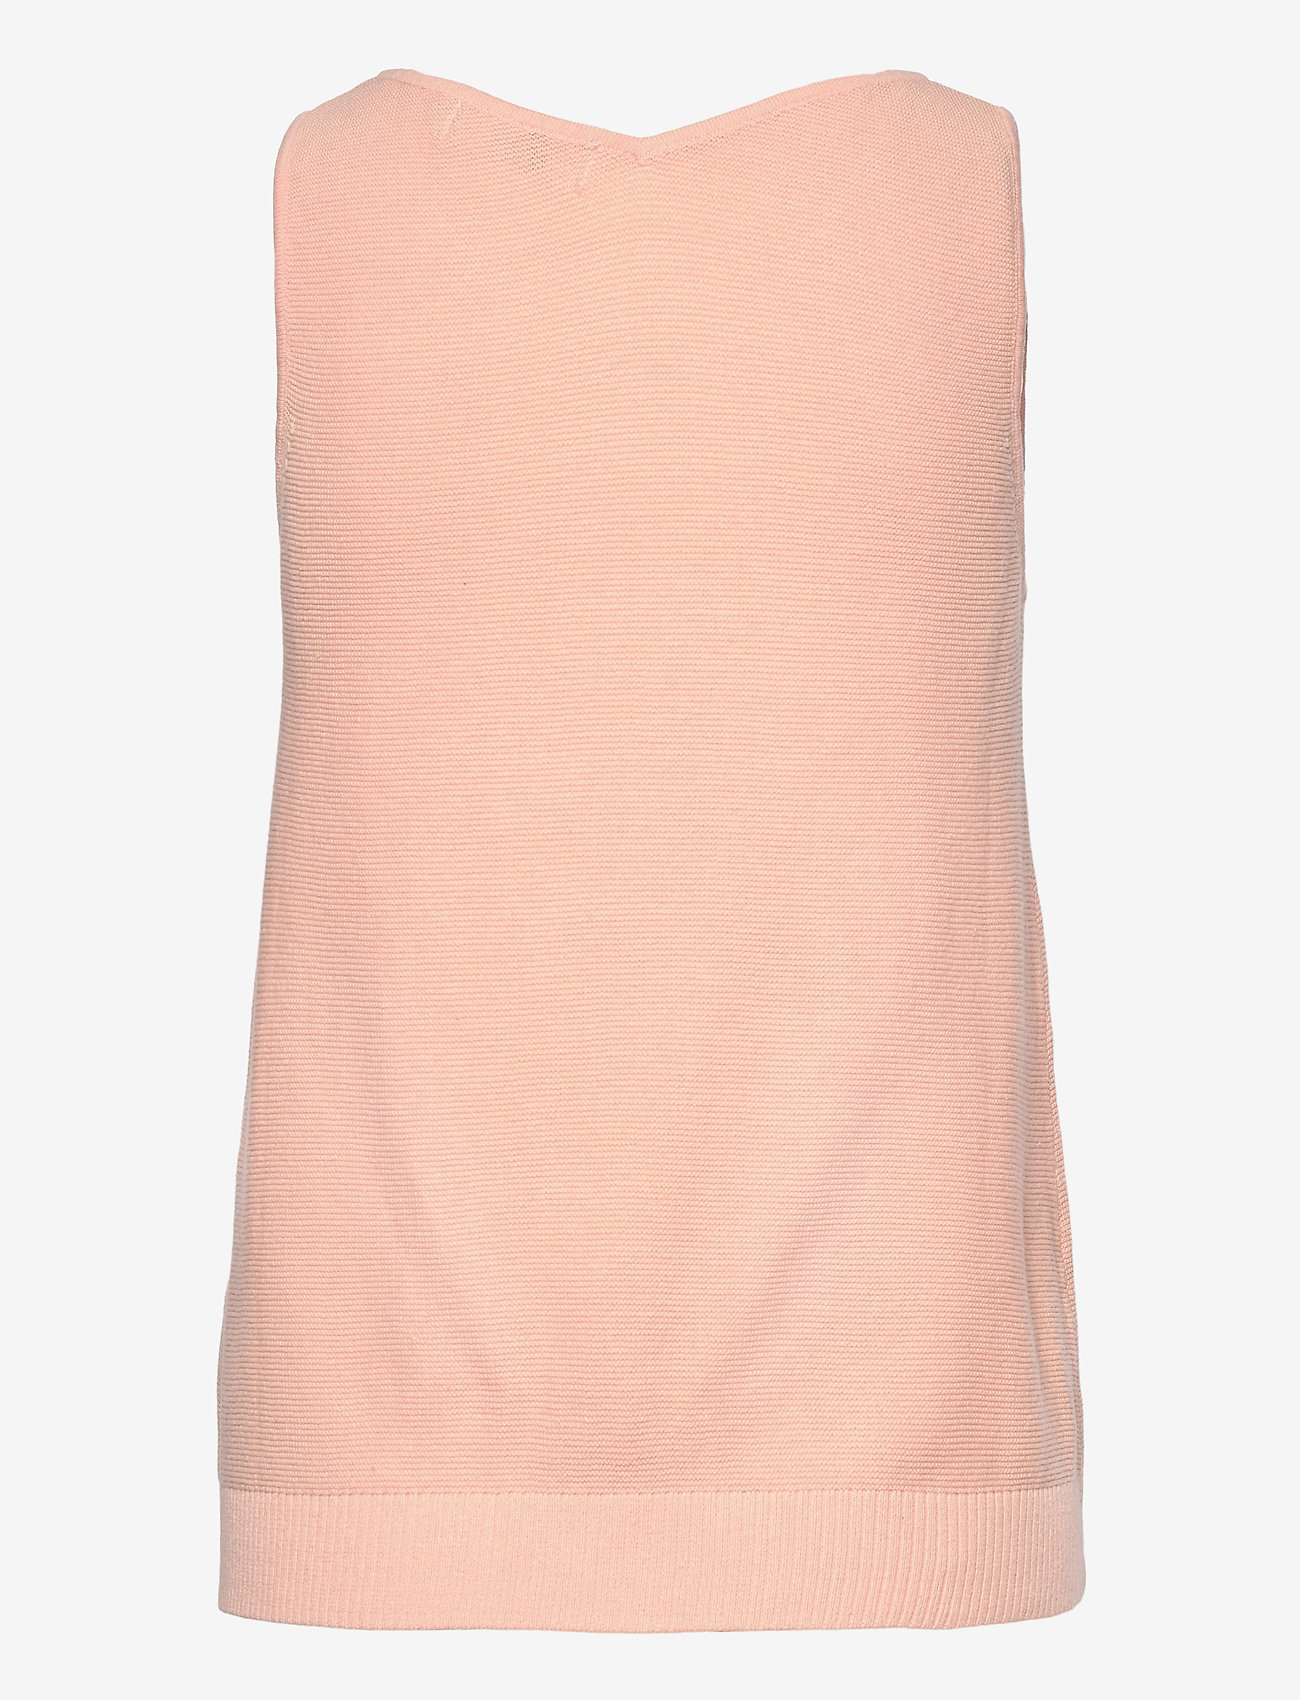 Cream - CRSillar Knit Top - knitted vests - pink sand - 2